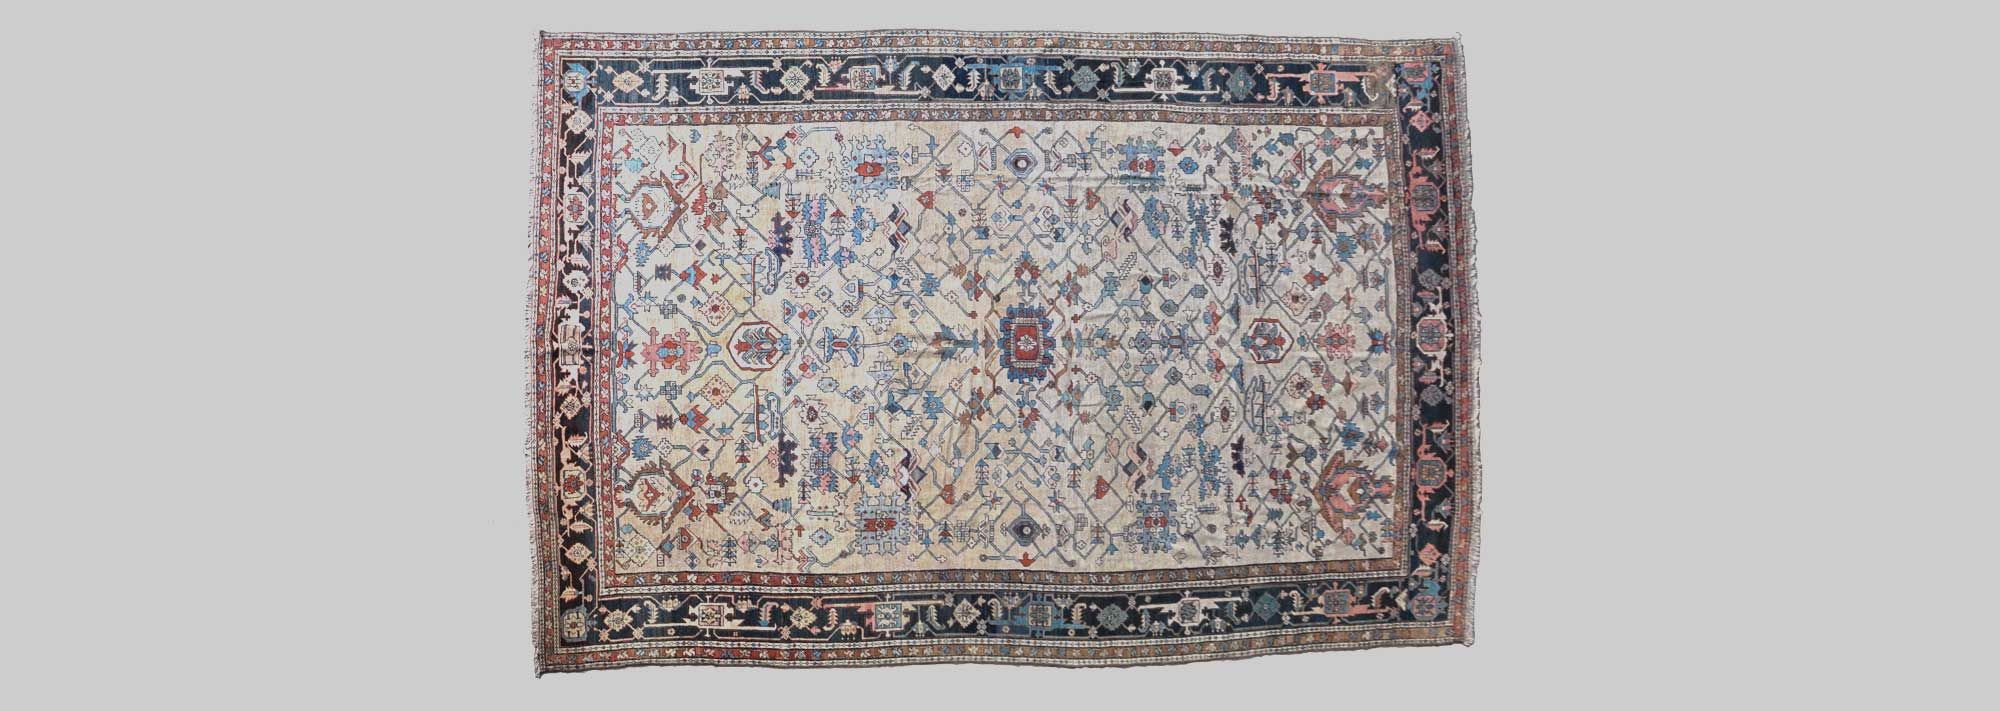 Antique and Vintage  Persian  Rugs |  Sharafi & Co